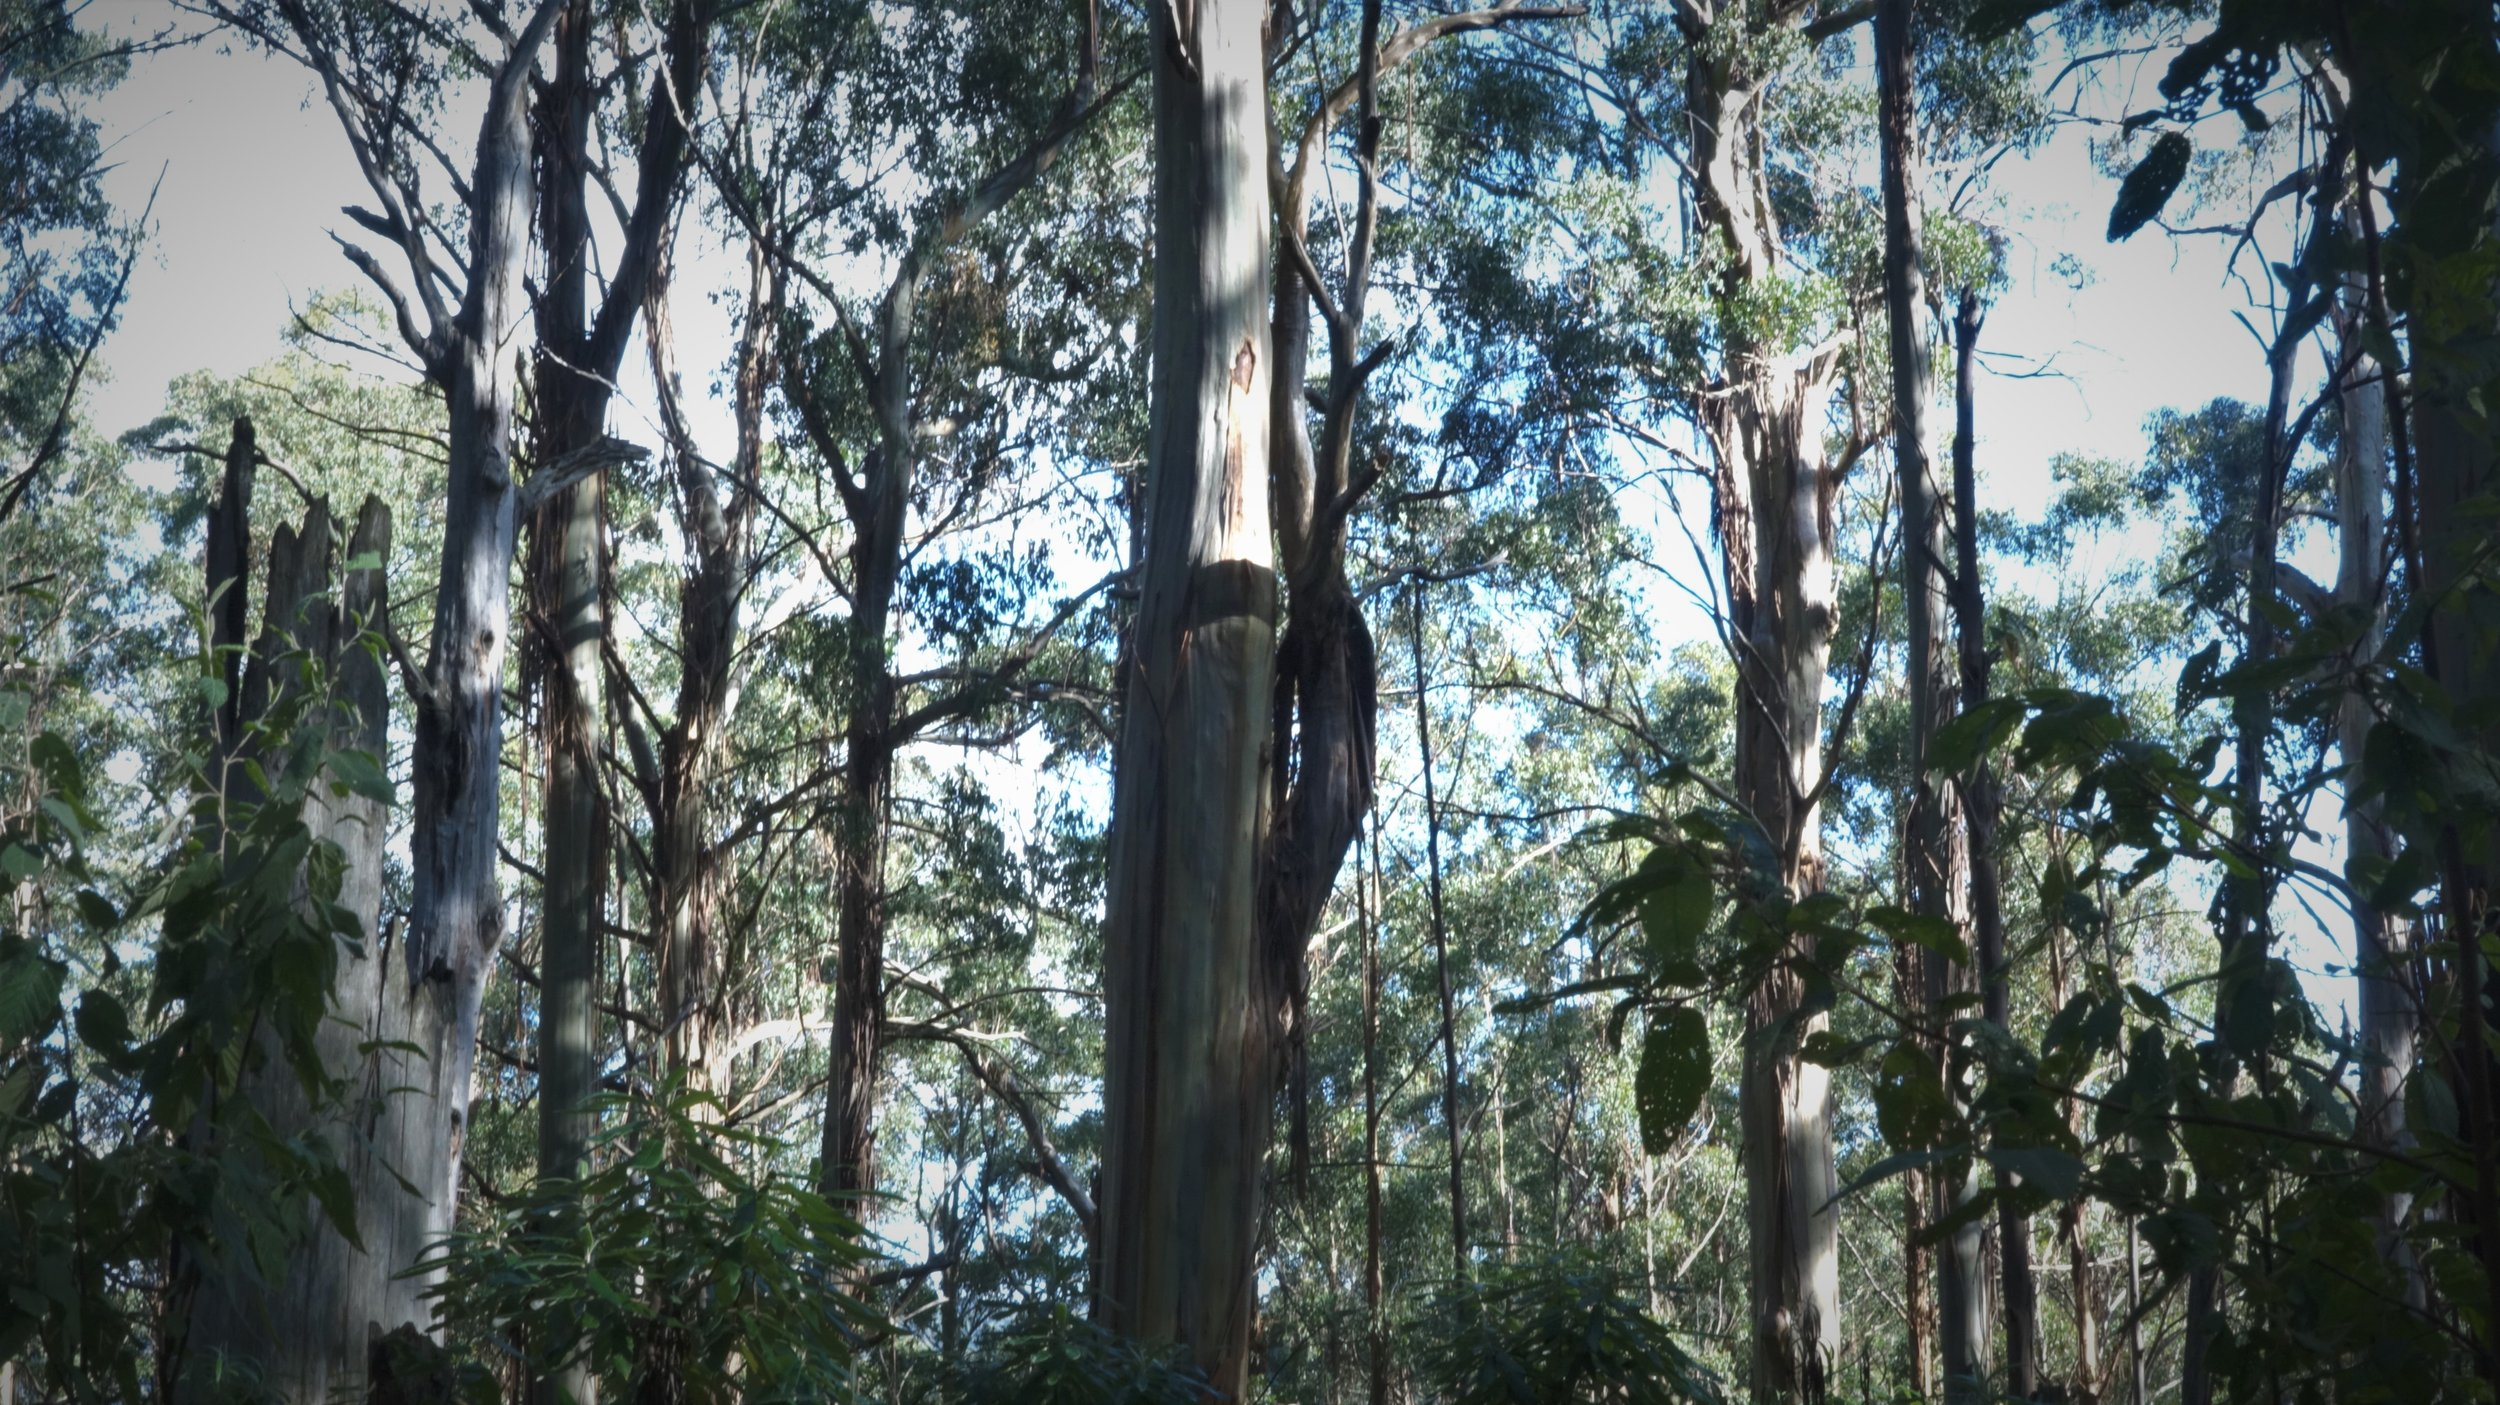 Old Growth Mountain Ash forest within the Murrindindi logging coupe